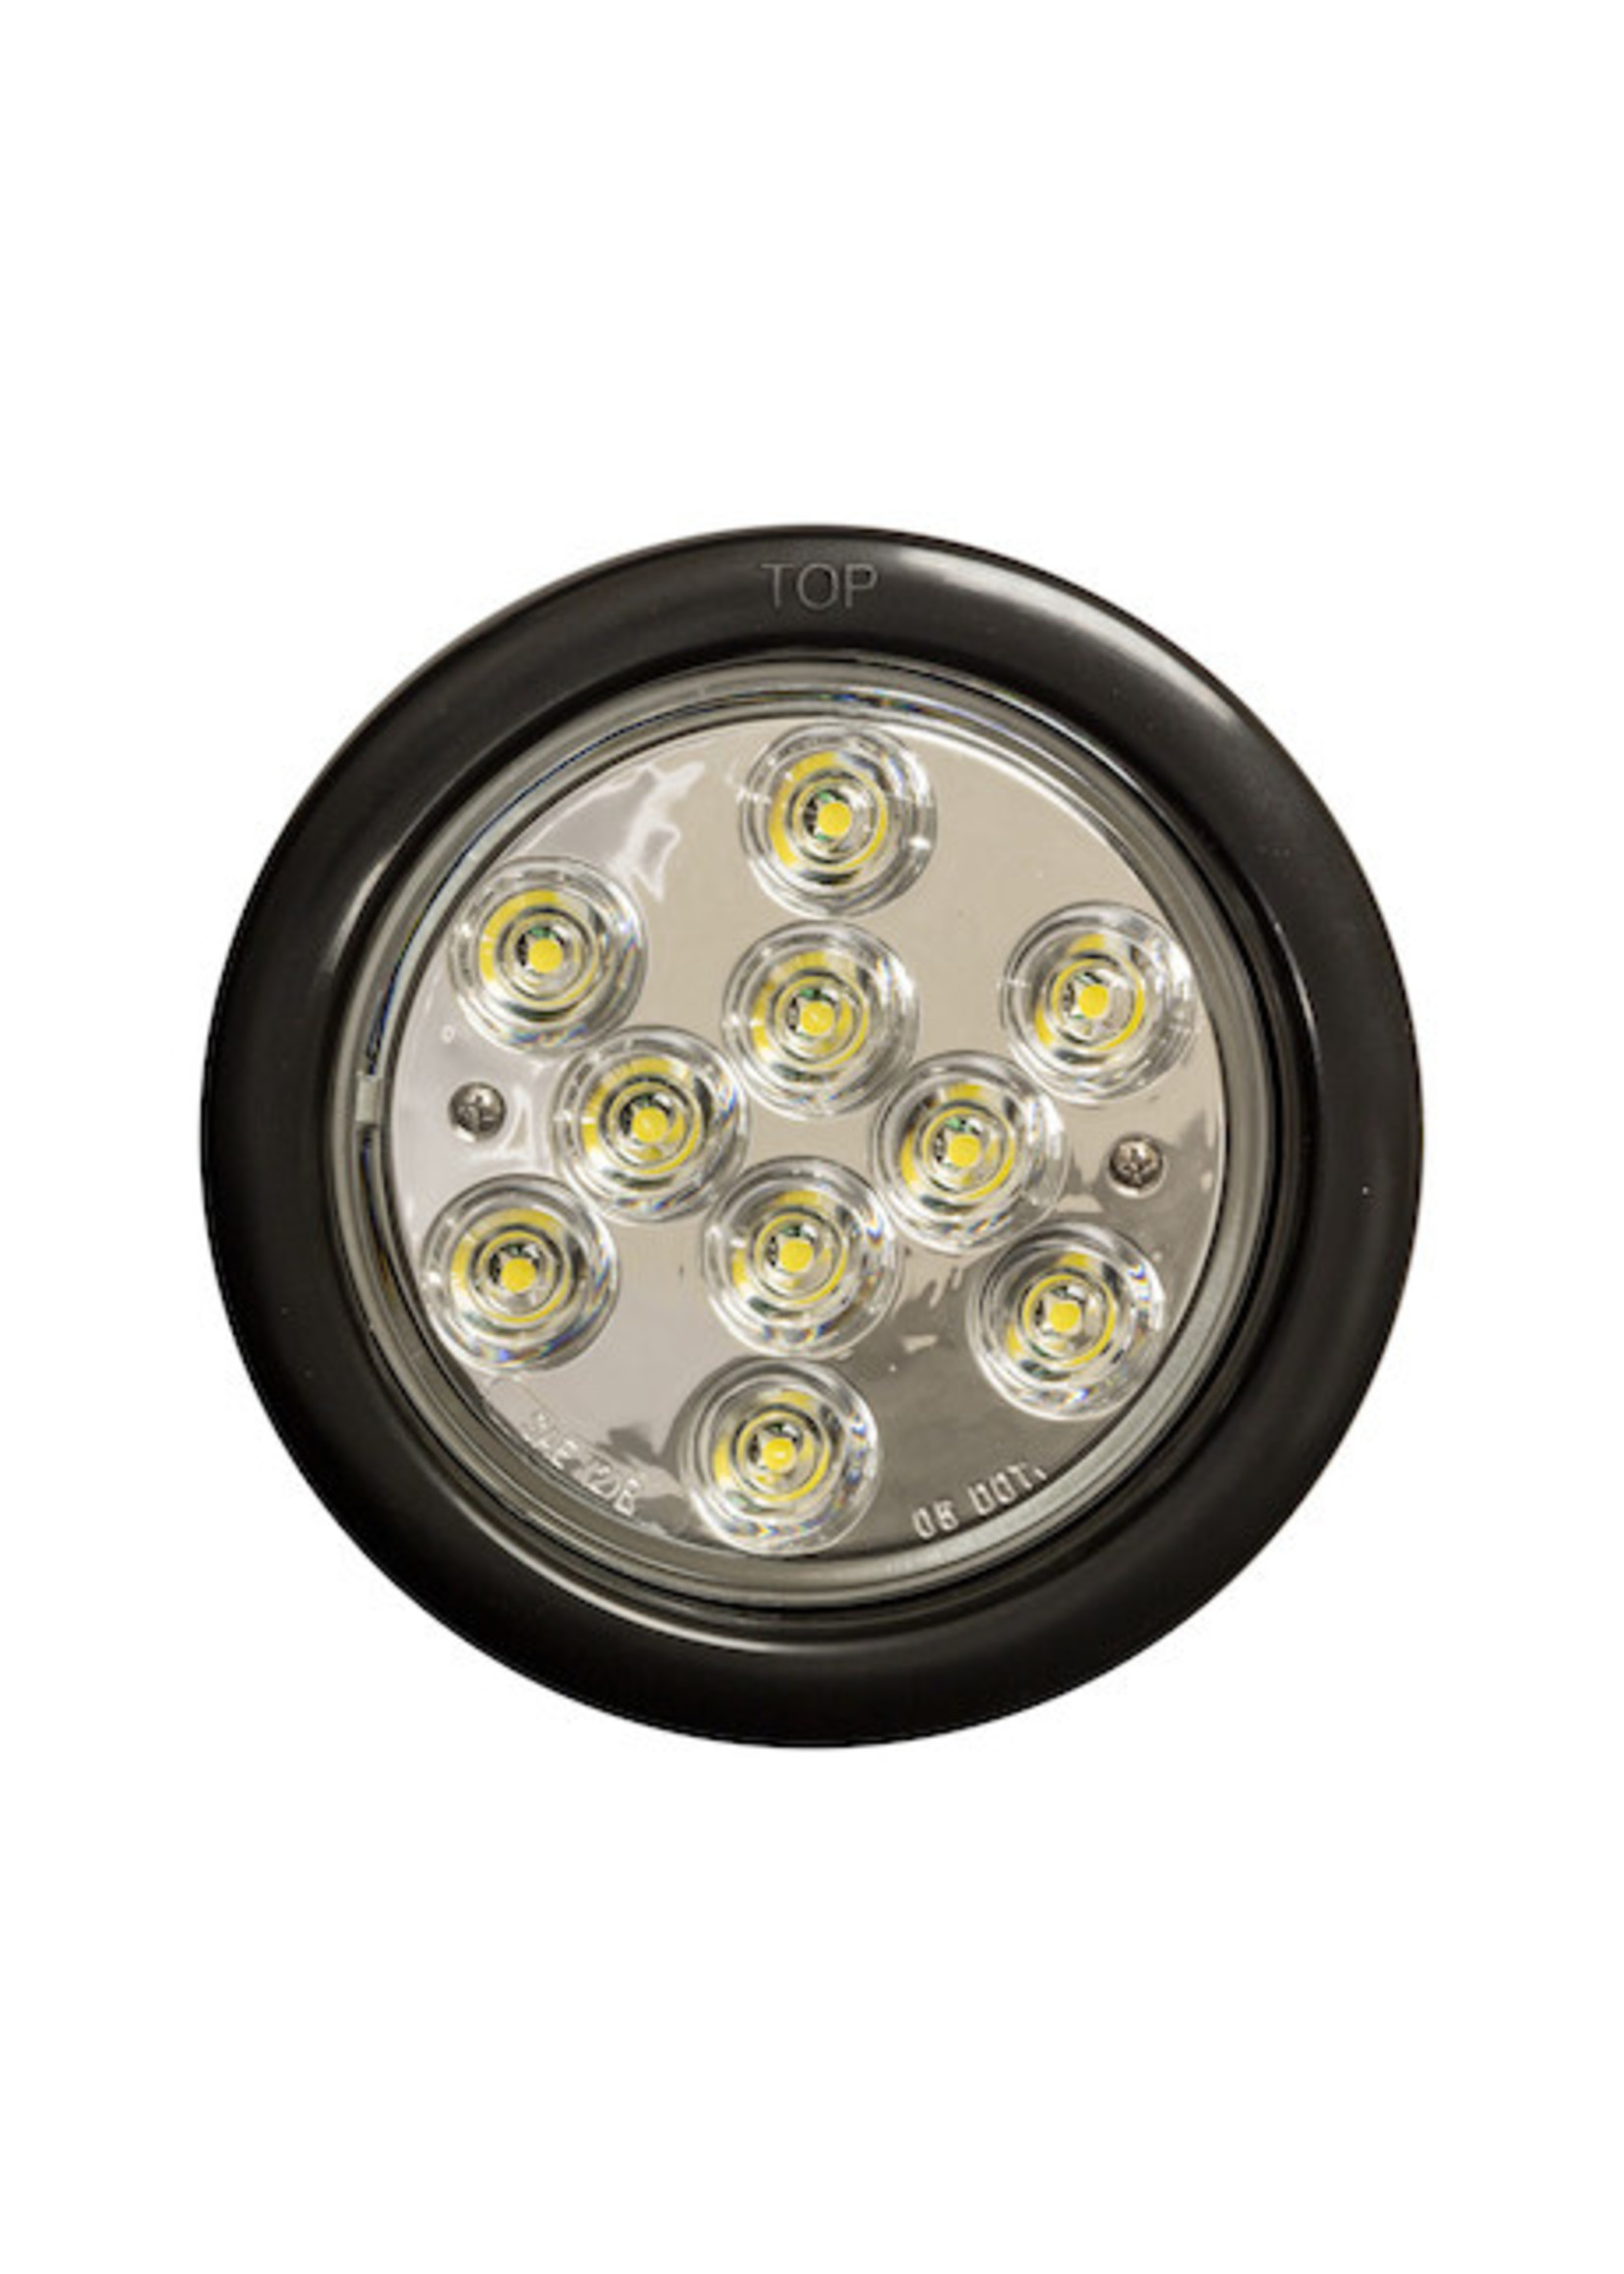 Buyers Products Company 4 Inch Clear Round Backup Light With 10 LEDs